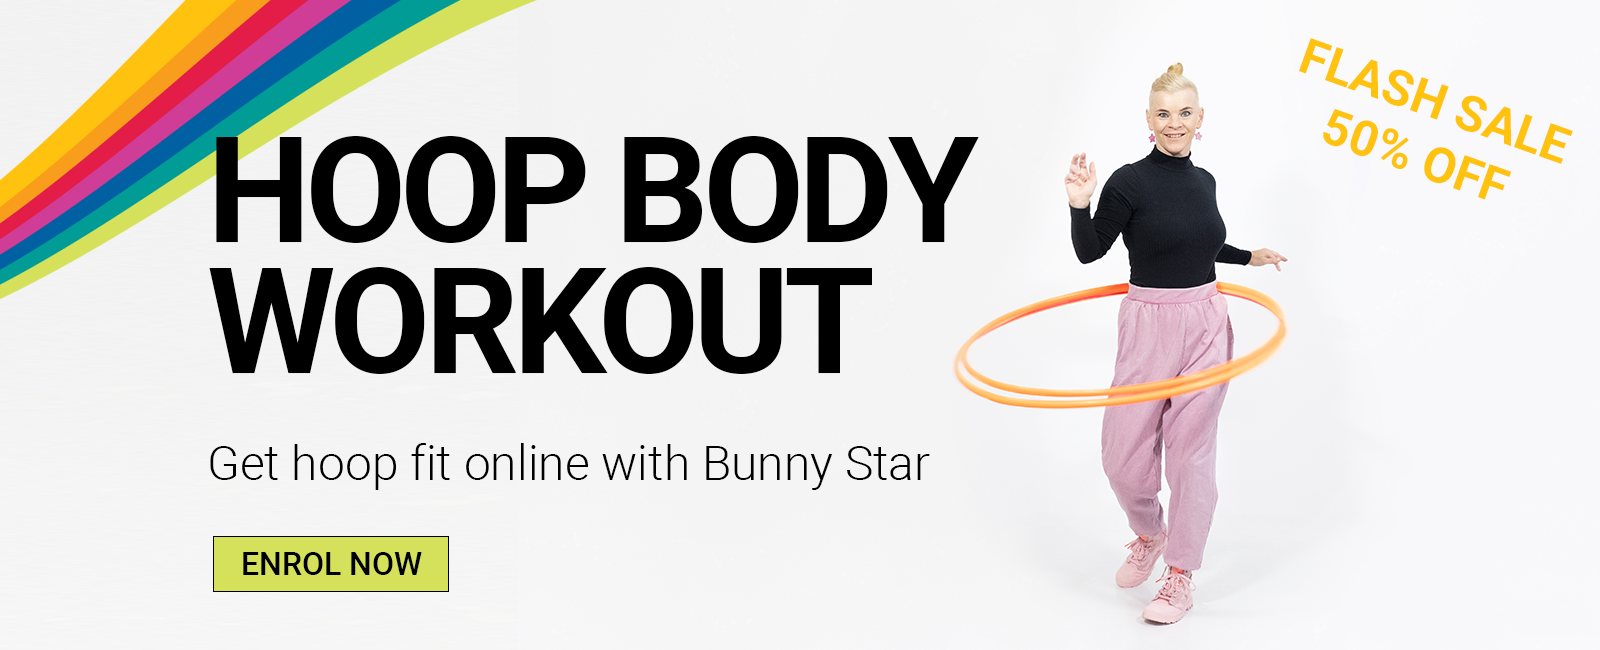 Hoop Body Workout Online Hula Hoop Course with Bunny Star